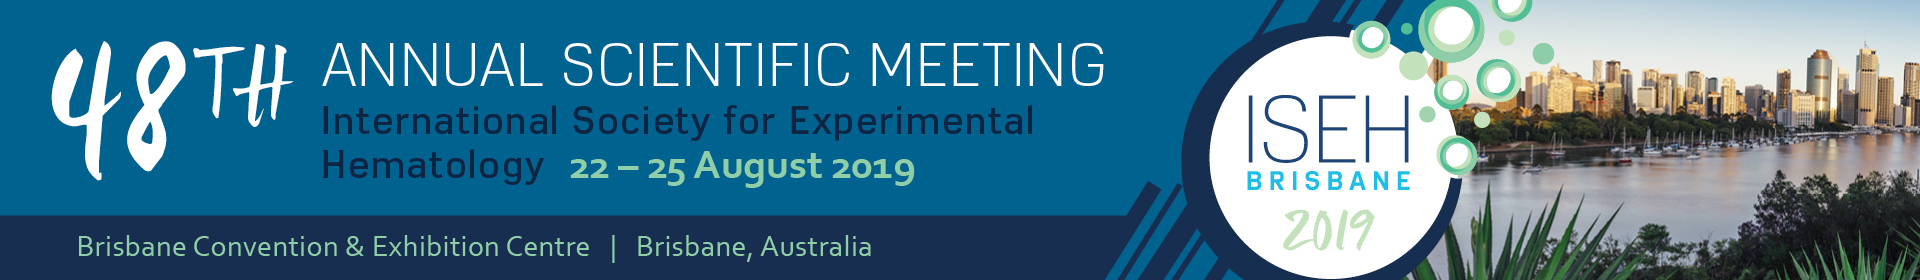 ISEH 2019 Event Banner